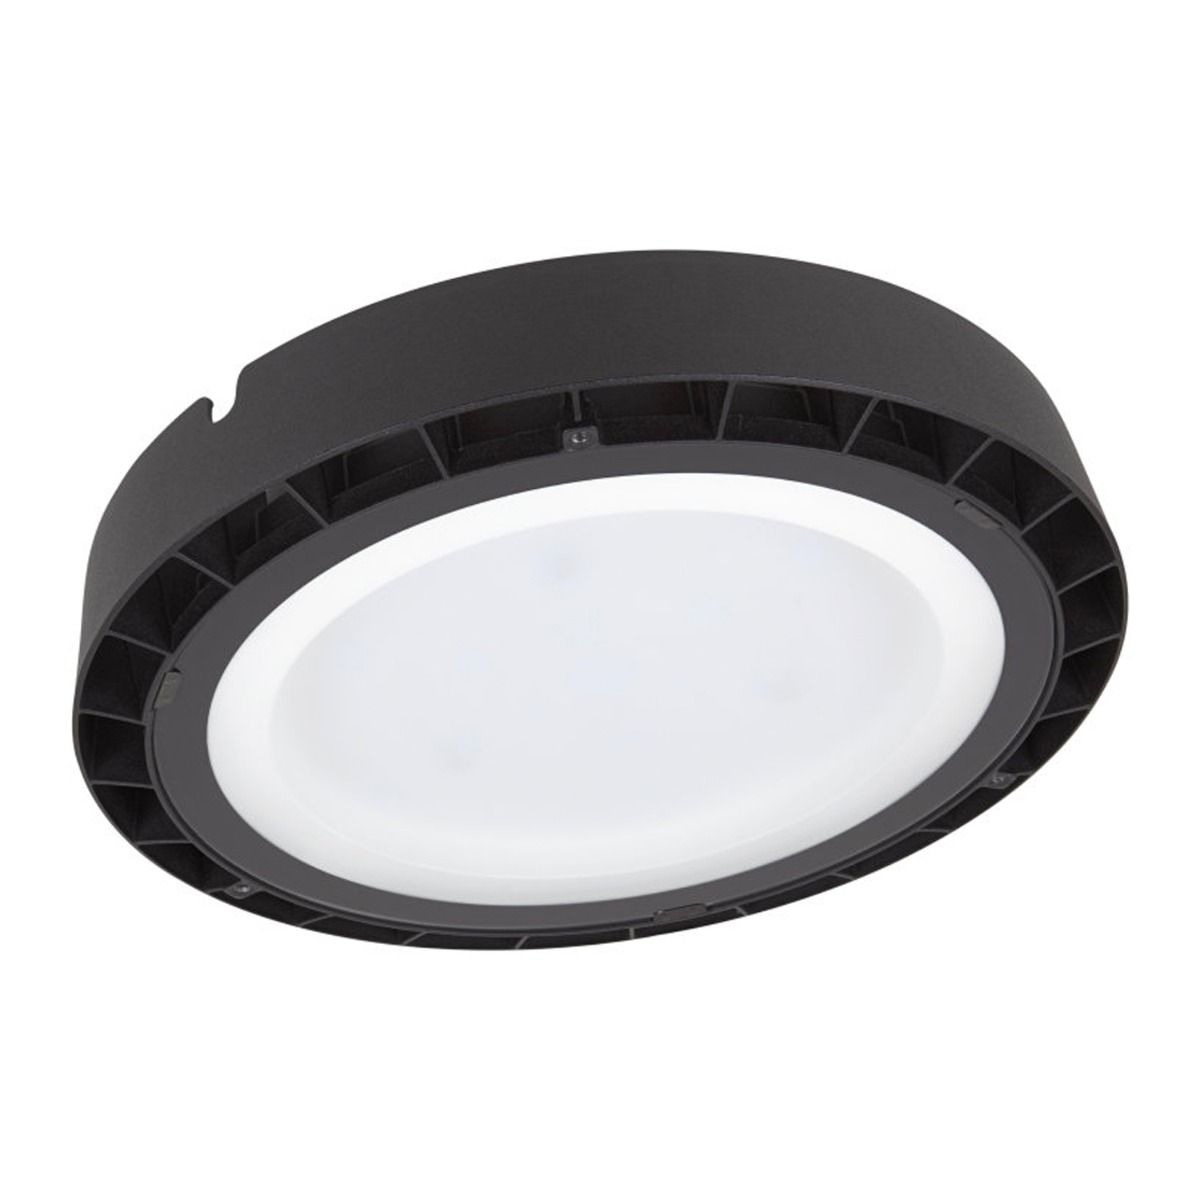 Ledvance LED High Bay Value 100W 4000K IP65 10000lm 100D | Cool White - Replaces 200W